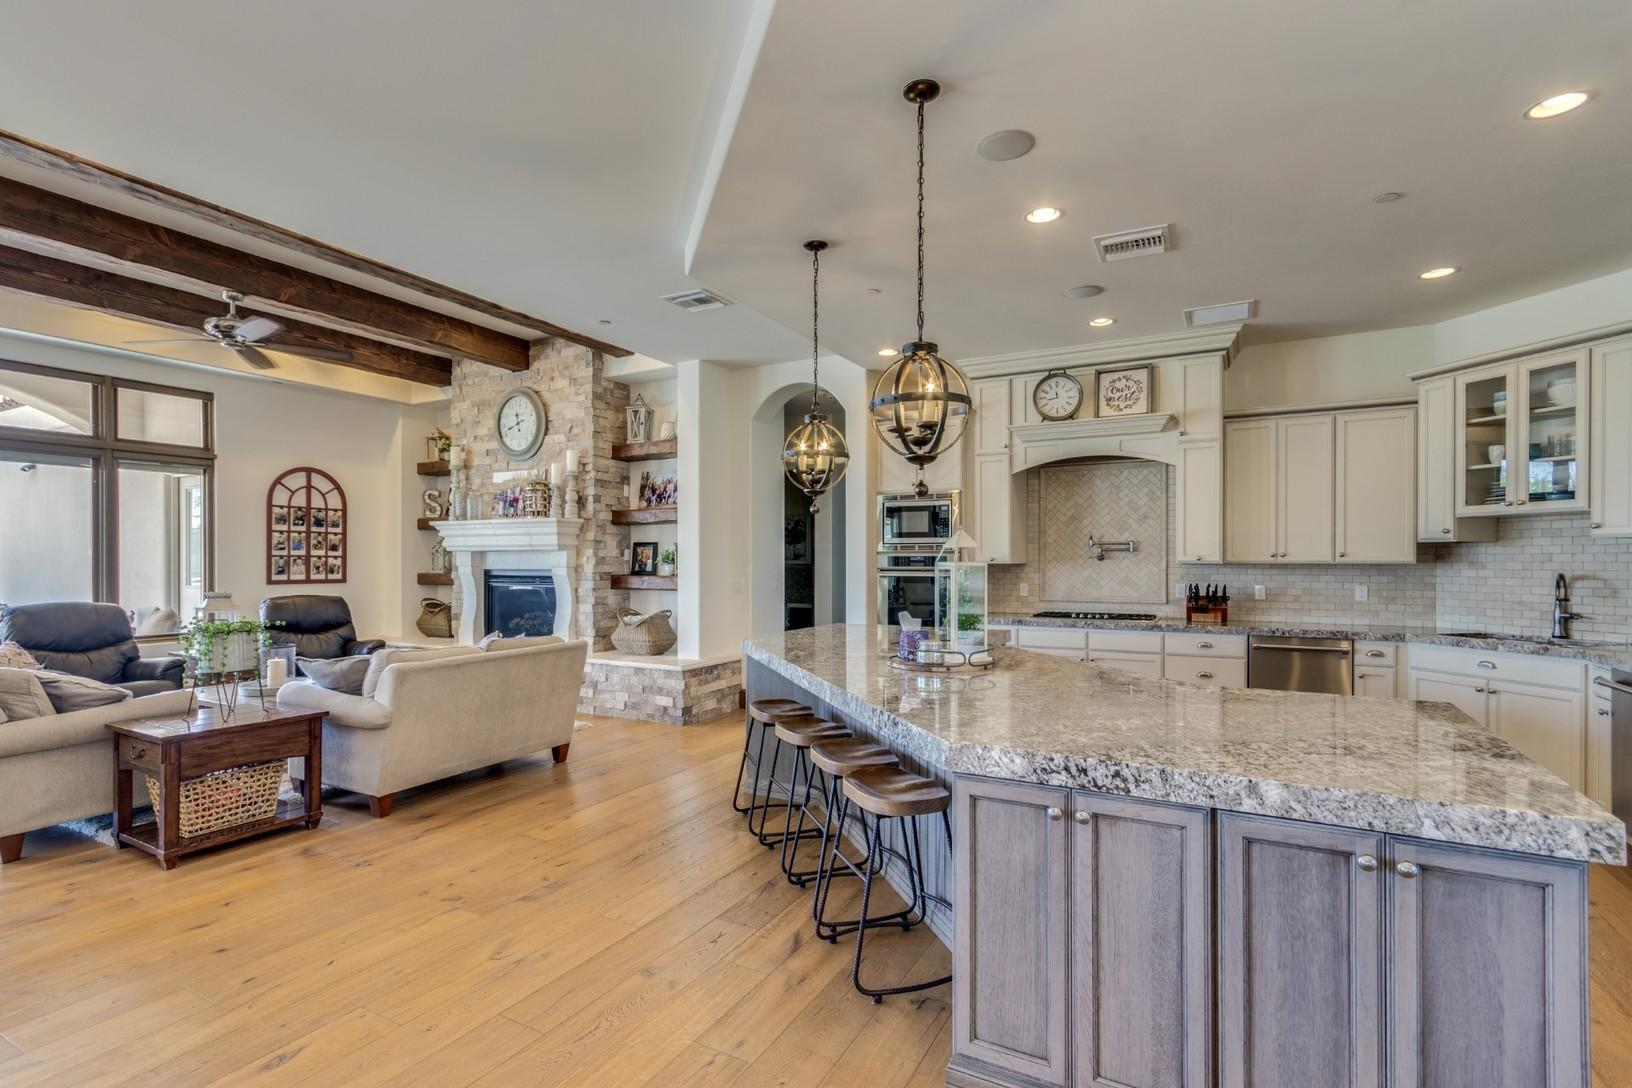 Kitchen Cabinetry in Cave Creek